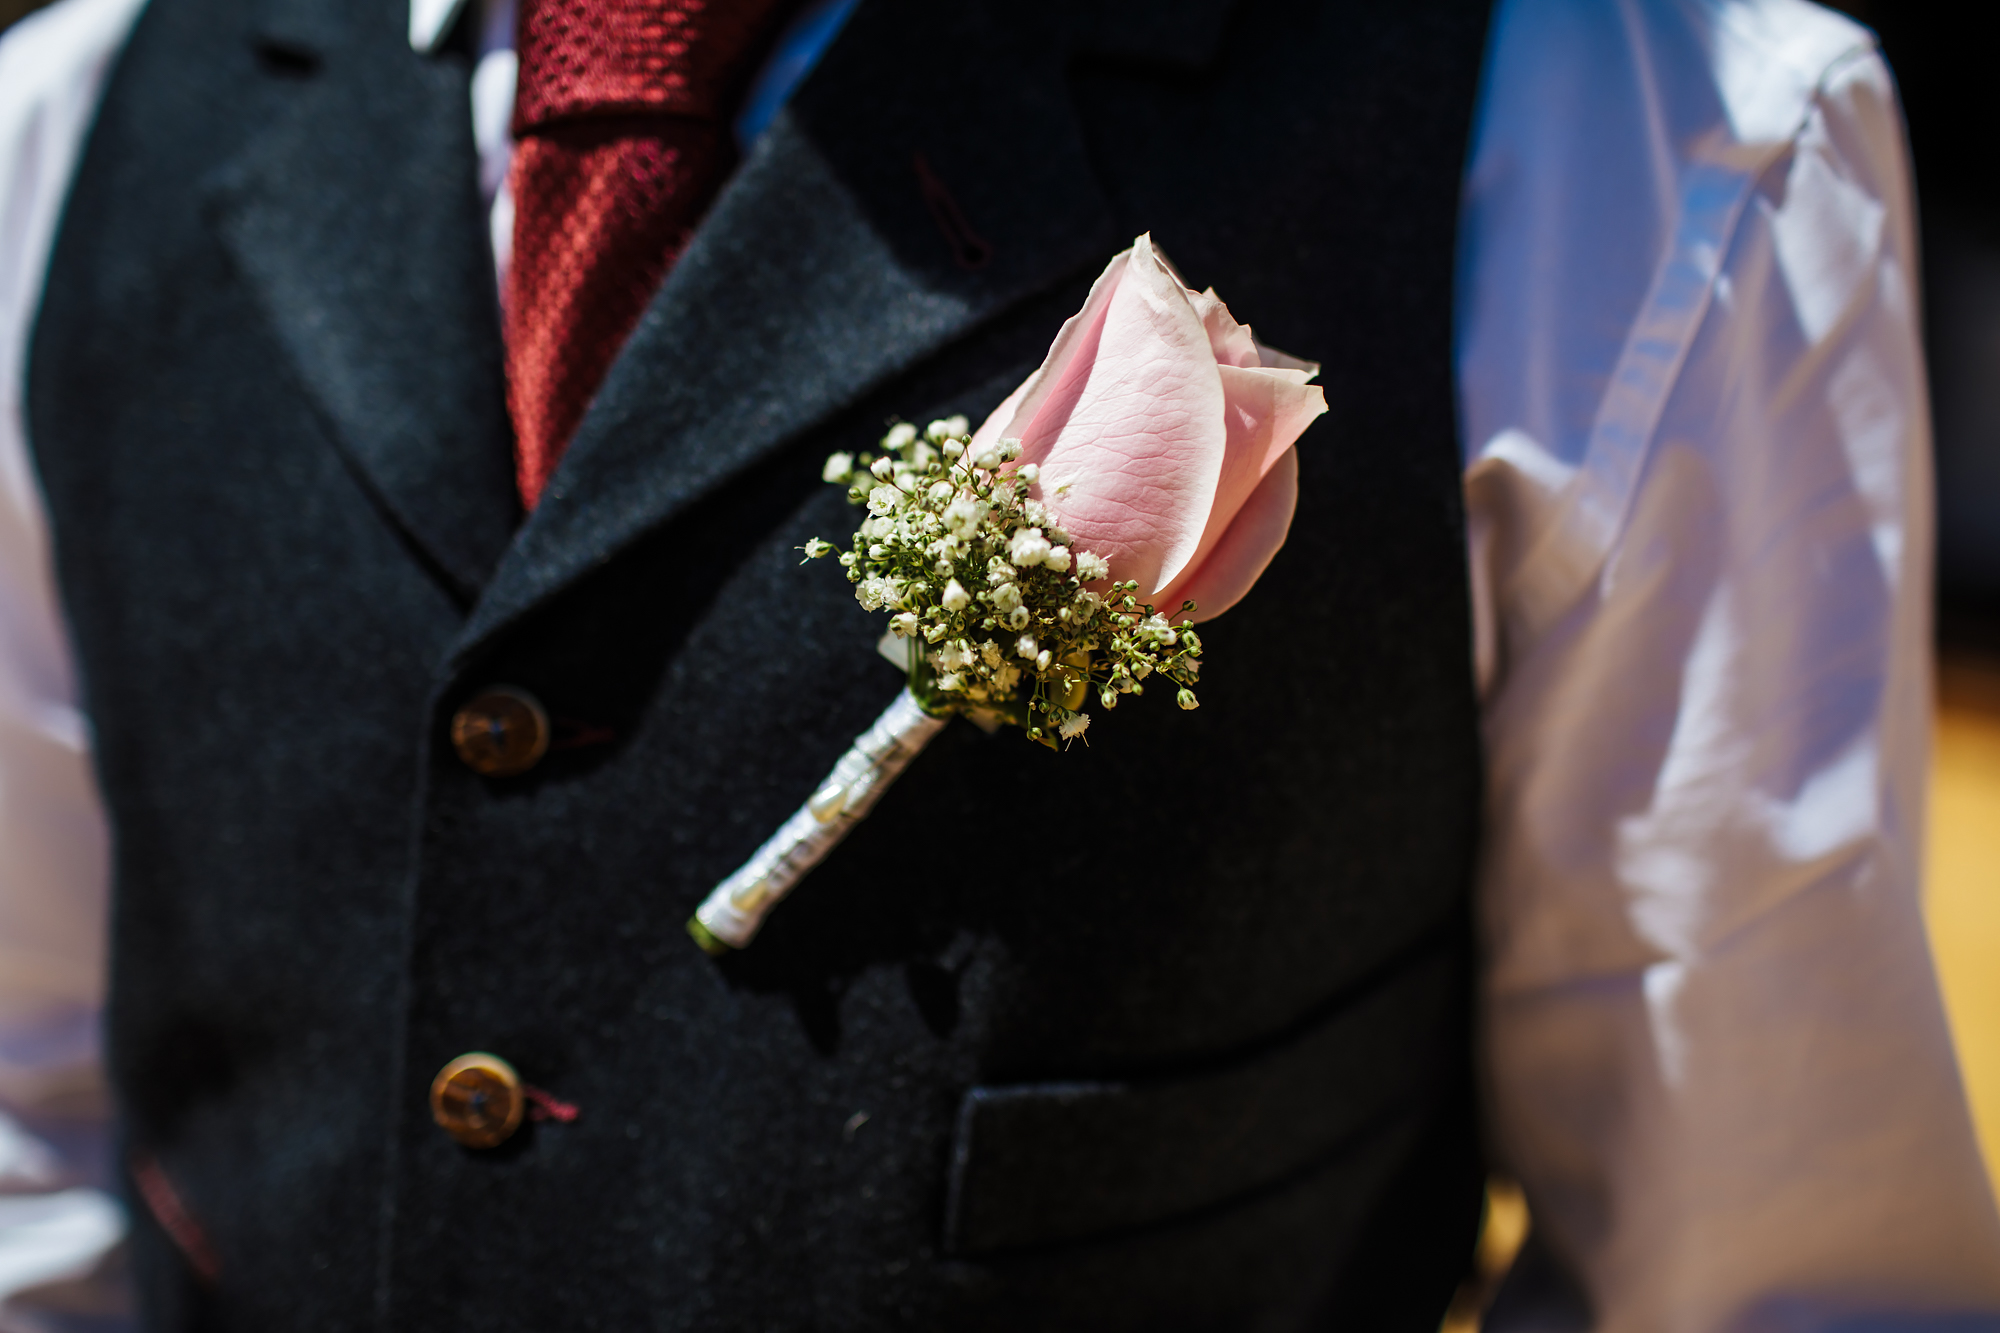 Close up of a buttonhole in Spain at a wedding